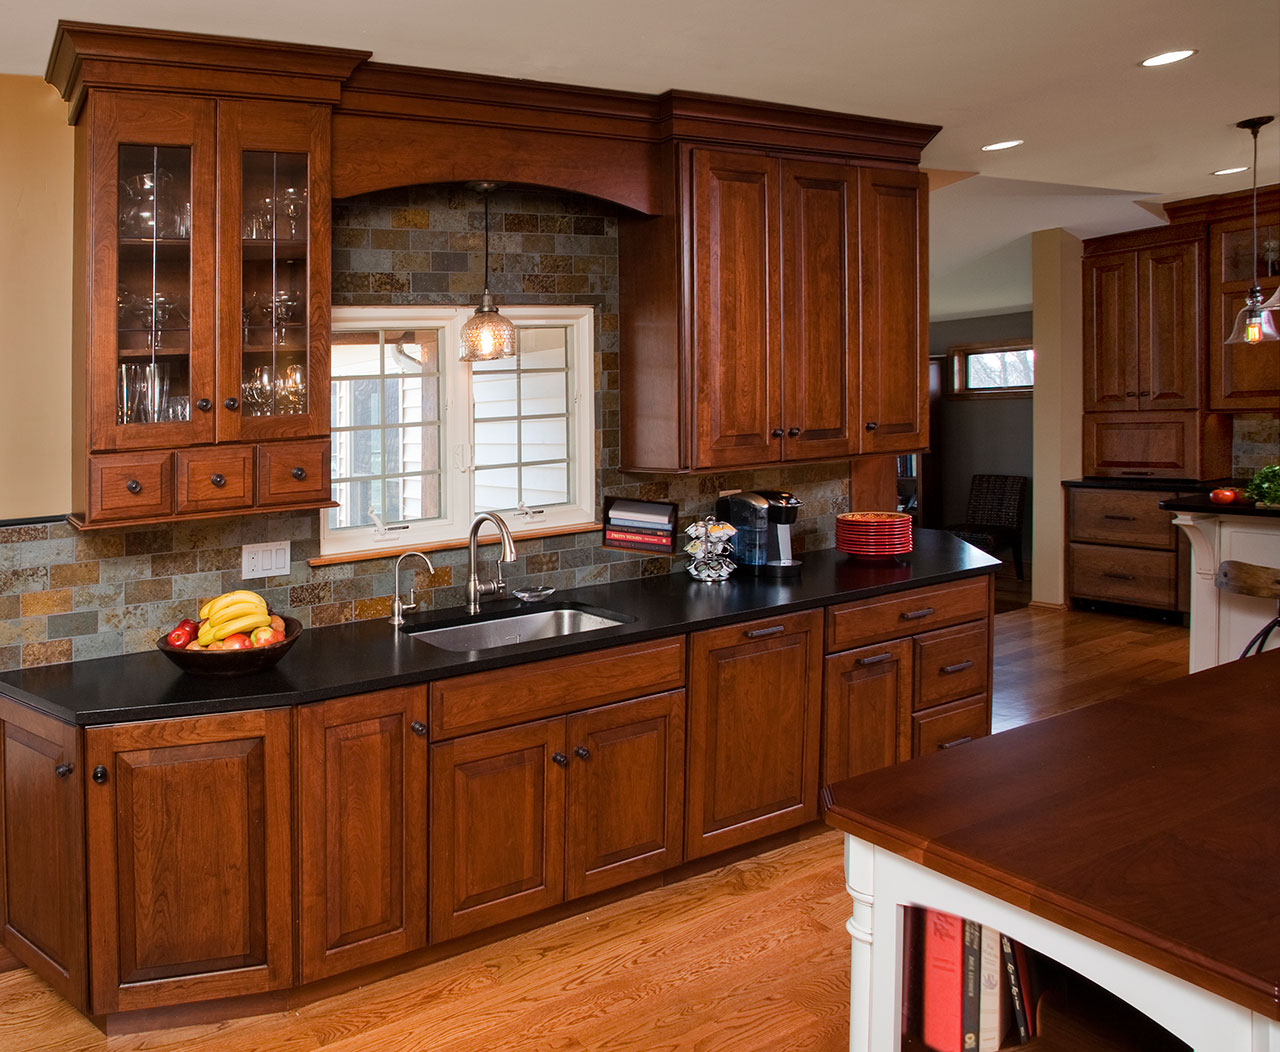 Kitchens Ideas Pictures Traditional Kitchens Designs And Remodeling Htrenovations